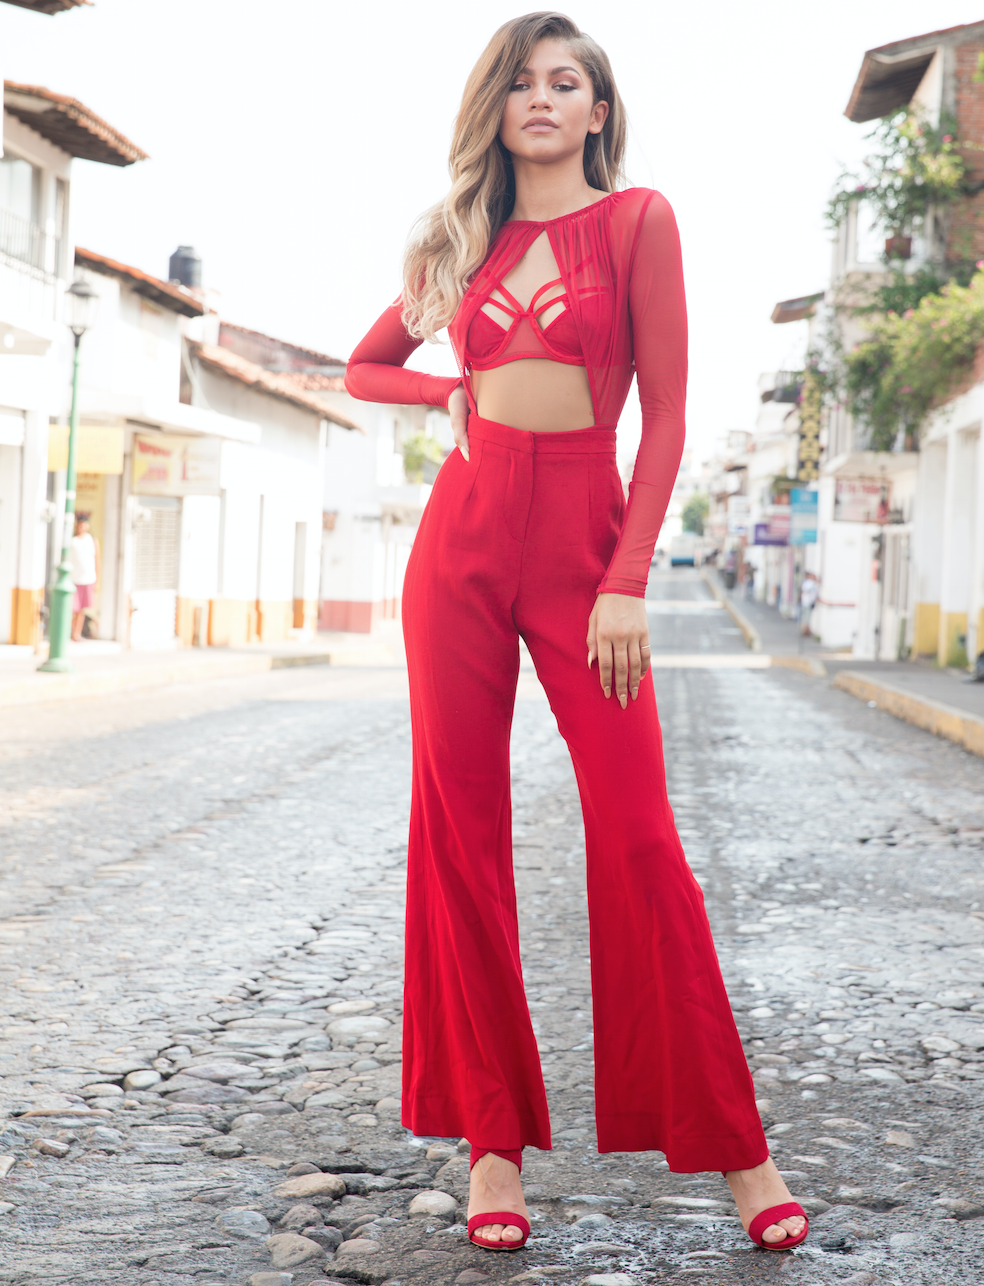 Image result for zendaya red pants